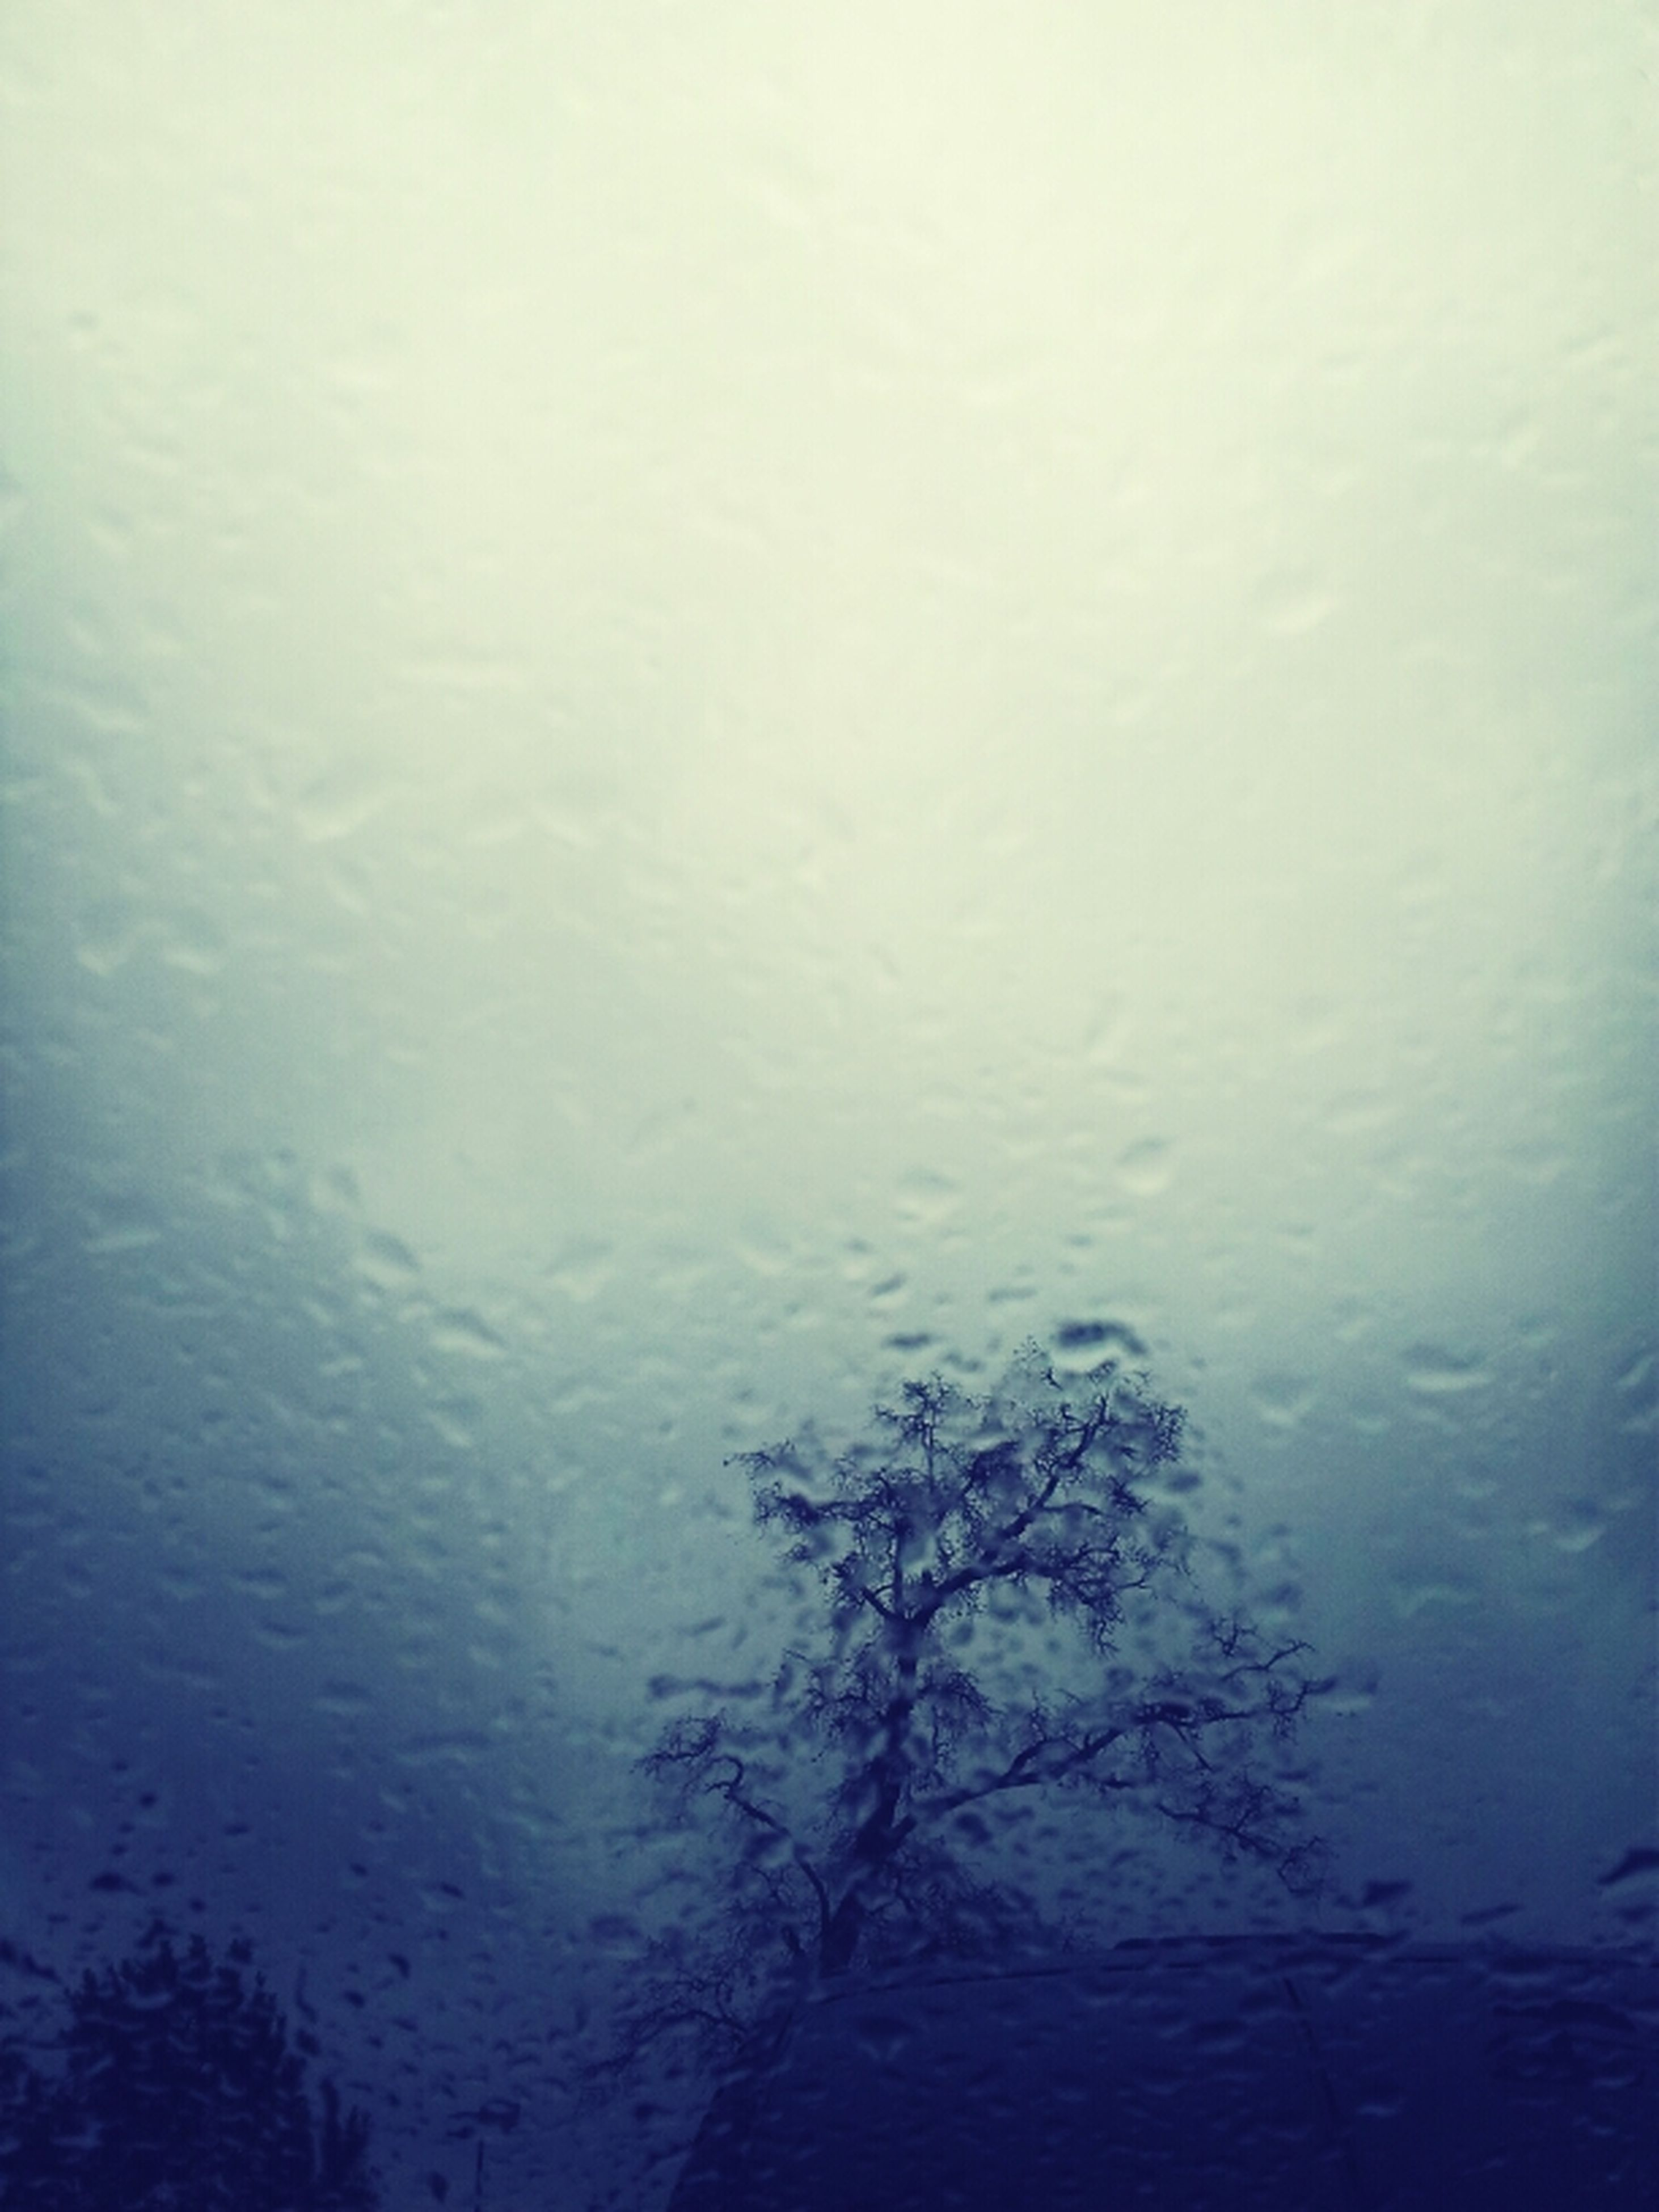 weather, rain, wet, water, season, drop, indoors, window, full frame, backgrounds, fog, transparent, glass - material, nature, raindrop, sky, tranquility, copy space, no people, reflection